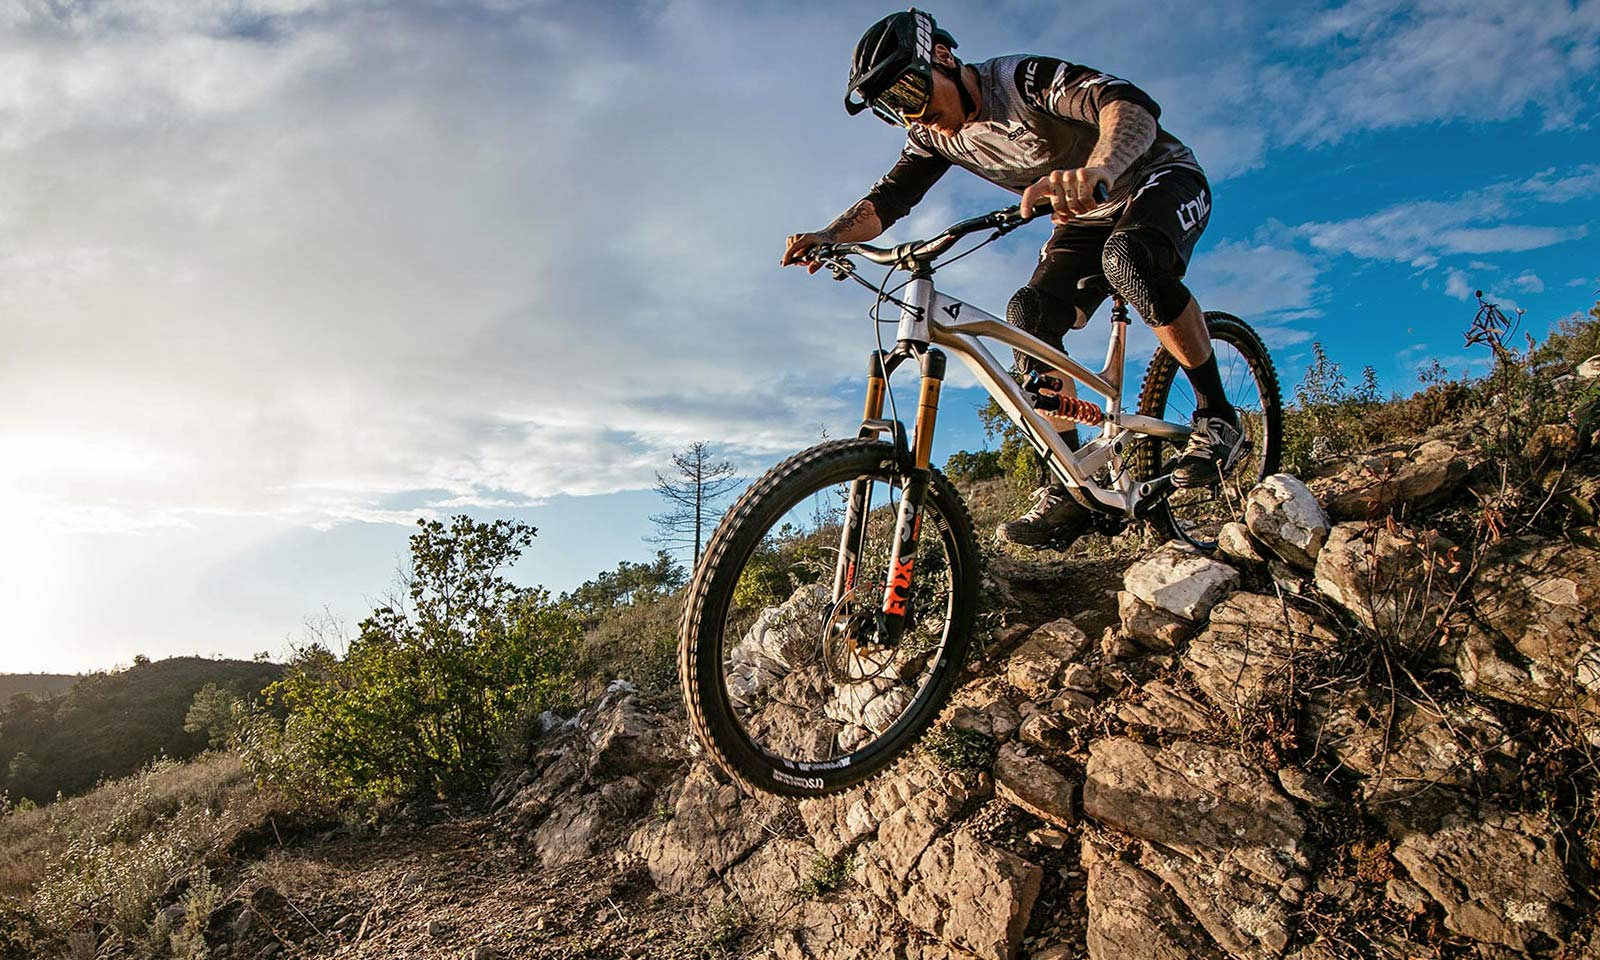 a31a2a07f80 YT brushes up limited edition raw alloy Capra 27 AL enduro bike for Black  Friday